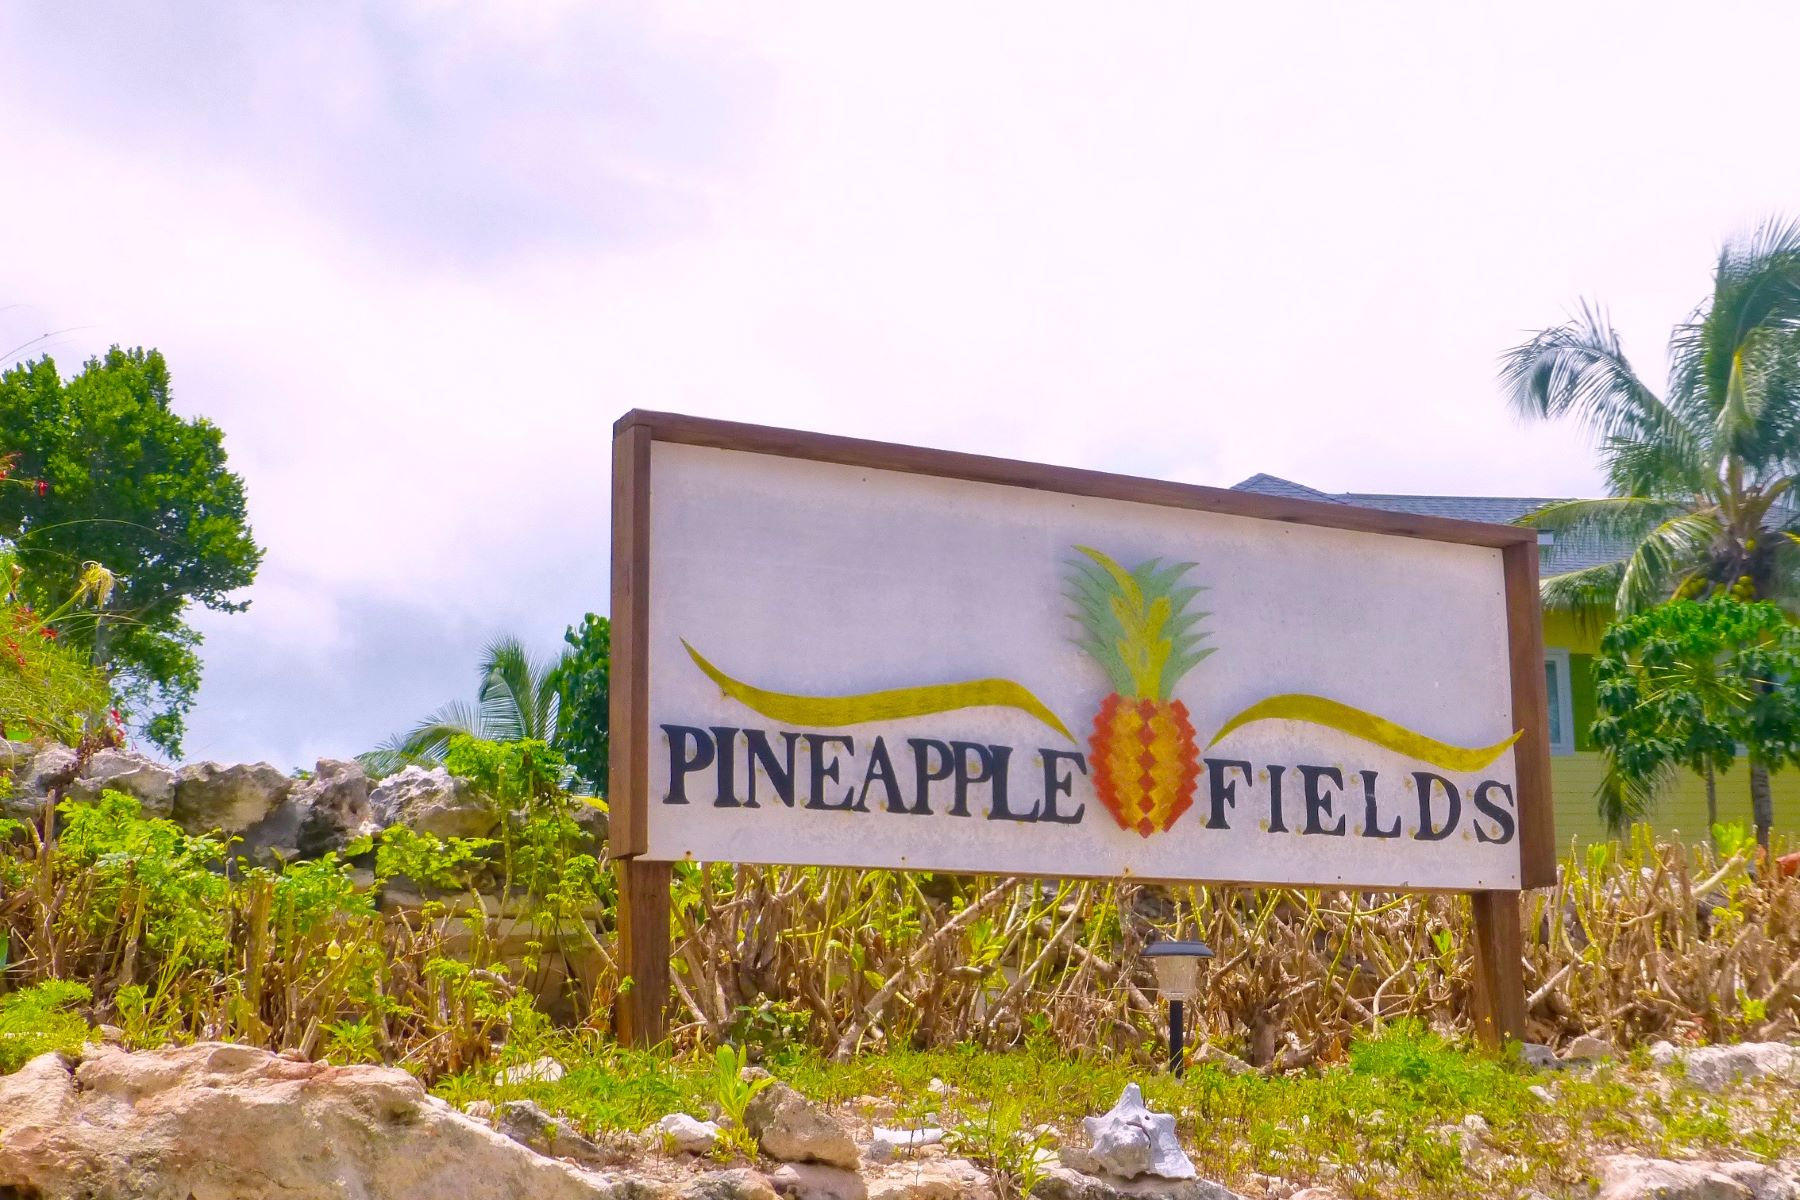 Additional photo for property listing at Unit 722 Pineapple Fields 加弗纳港, 伊路瑟拉 巴哈马